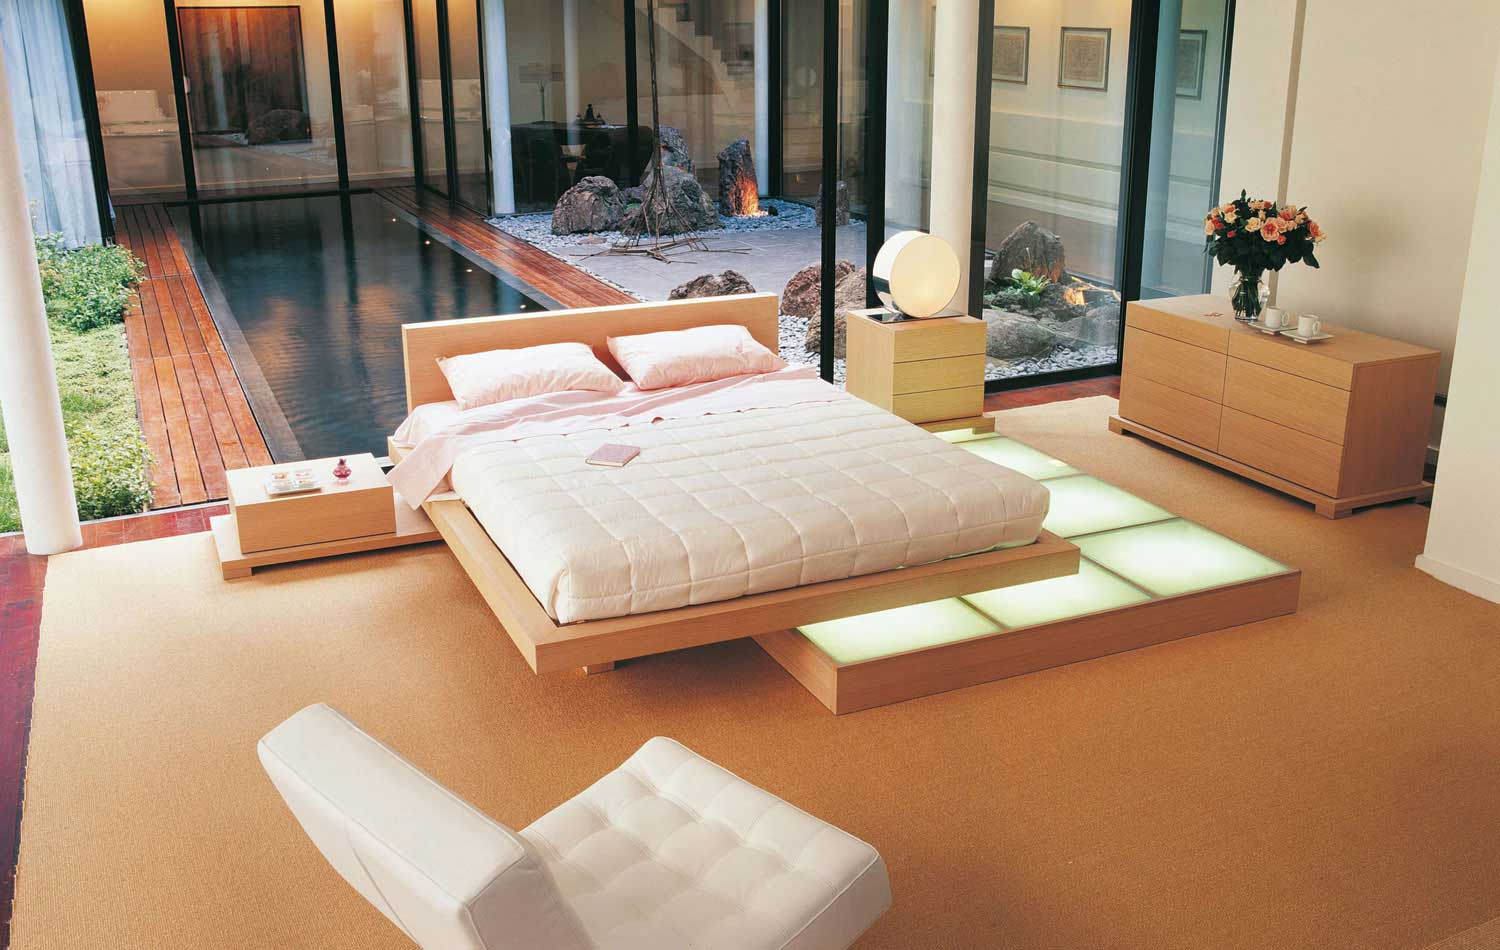 Bedroom Inspiration: 20 Modern Beds by Roche Bobois | Architecture ...